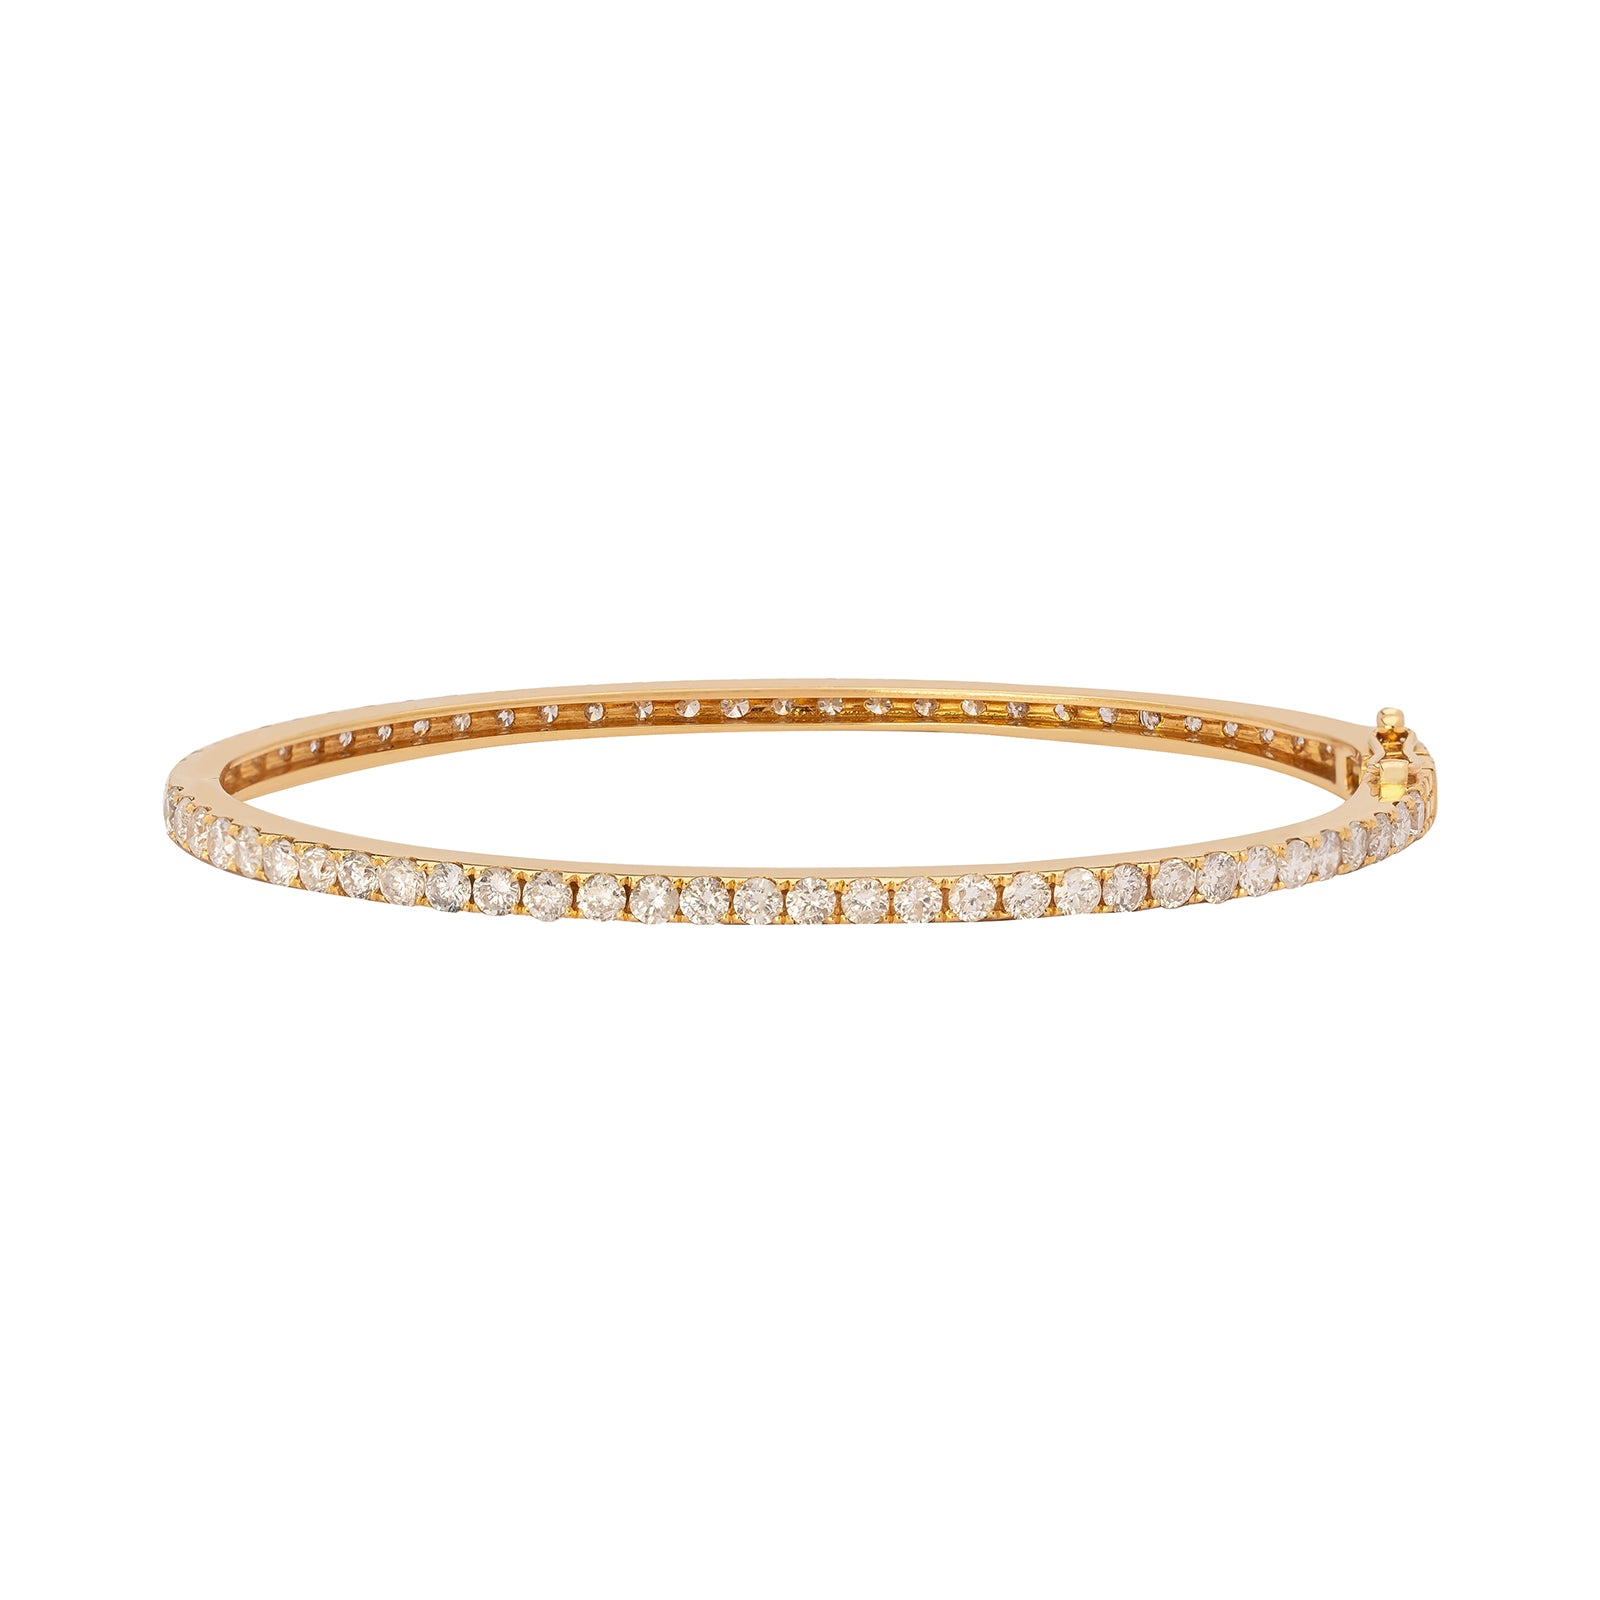 Shay Essential Single Row Bangle - White Diamond - Bracelets - Broken English Jewelry